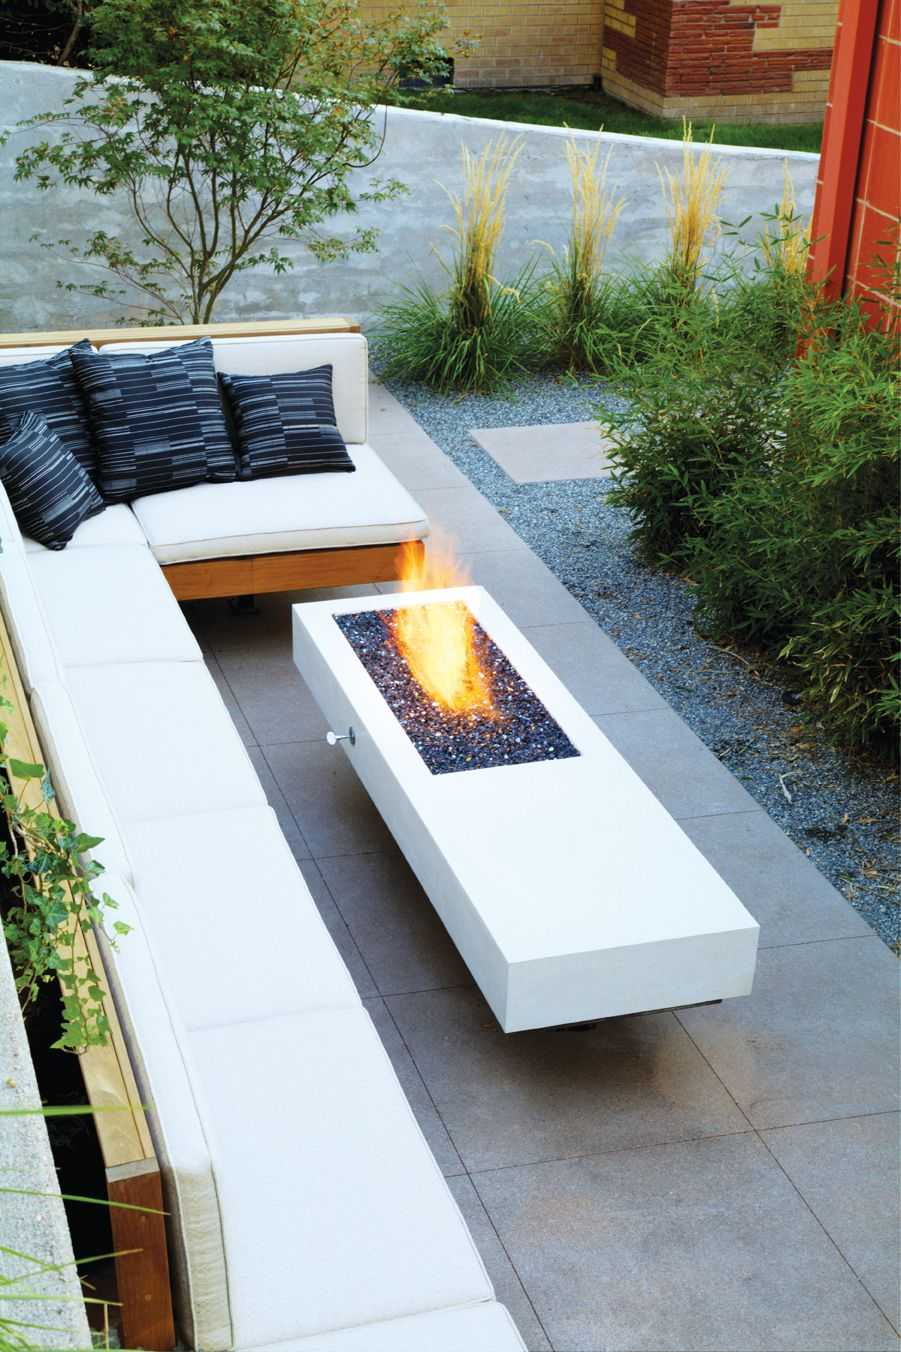 50 Gorgeous Outdoor Patio Design Ideas on Backyard Deck Decor id=69377